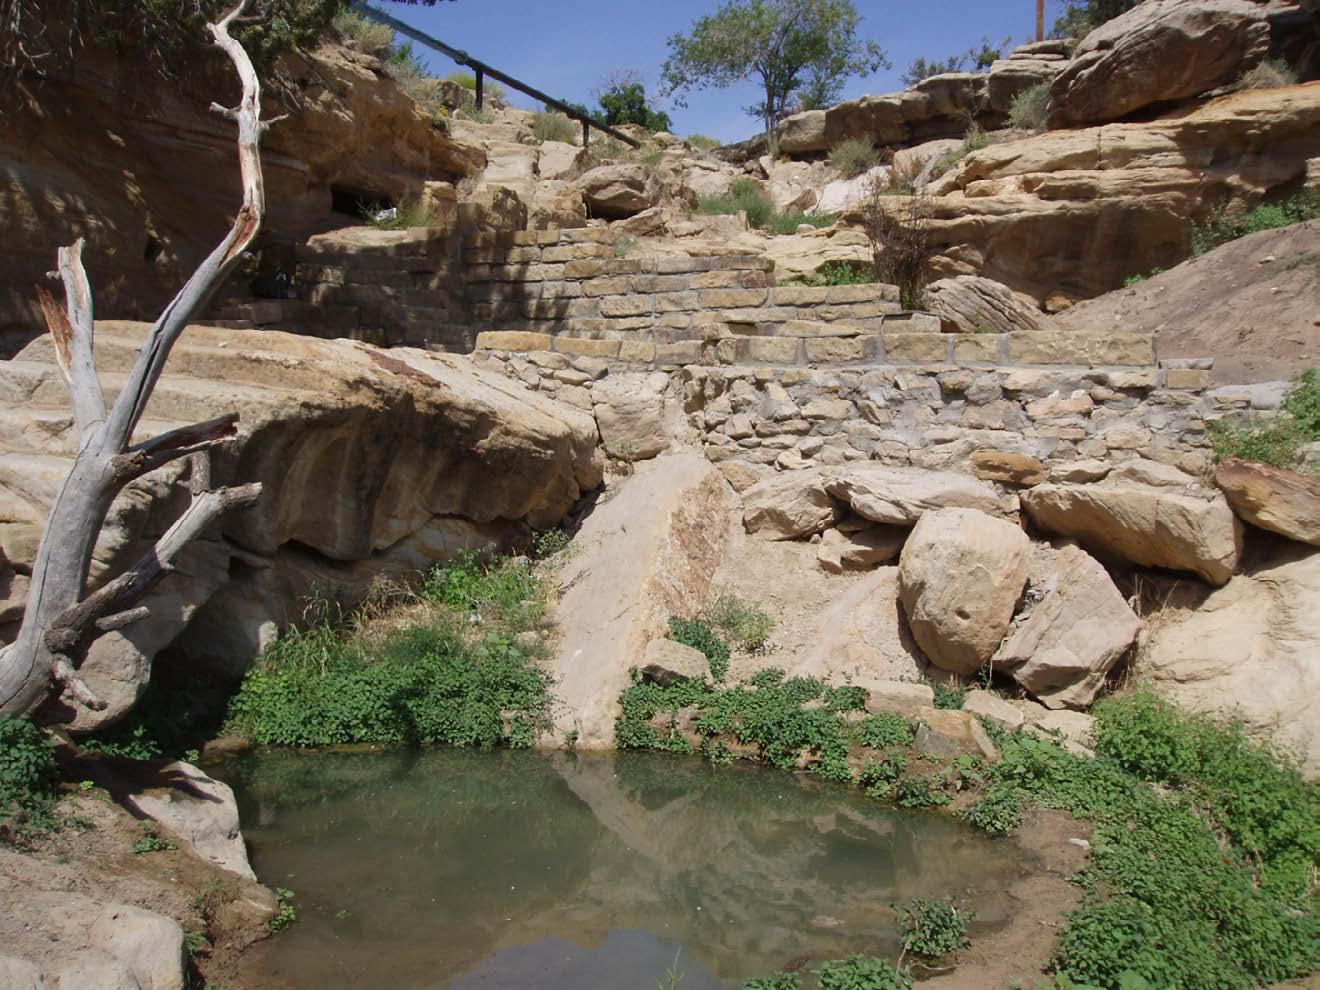 Hopi Tribe loses bid to force US to pay for clean drinking water